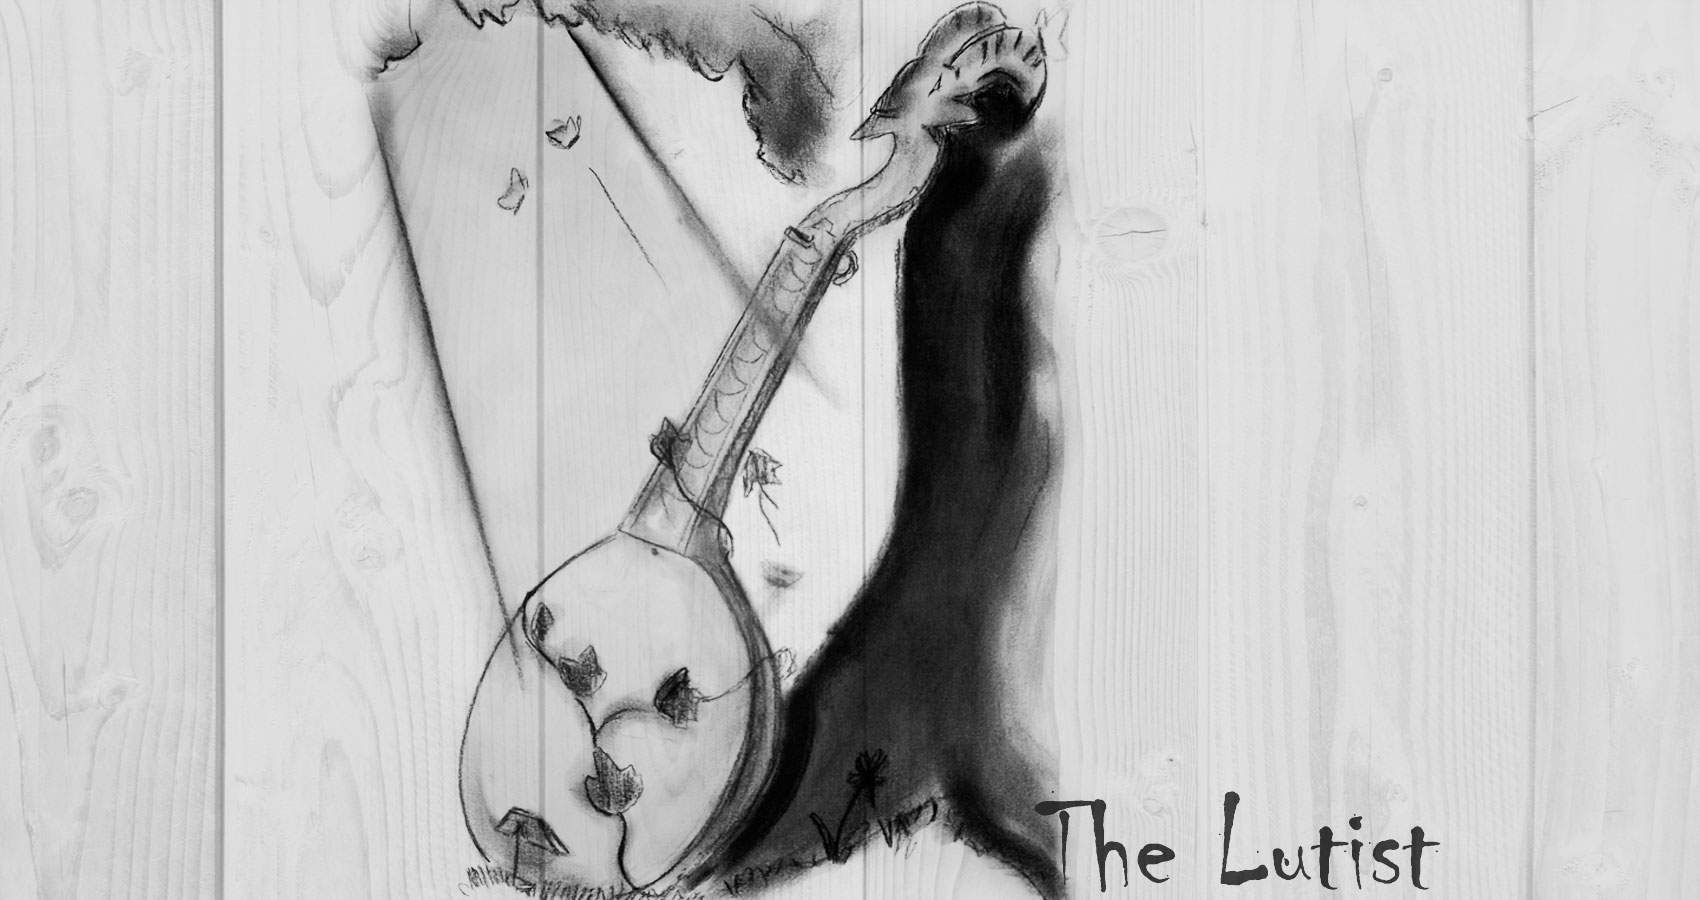 The Lutist written by TM Arko at Spillwords.com